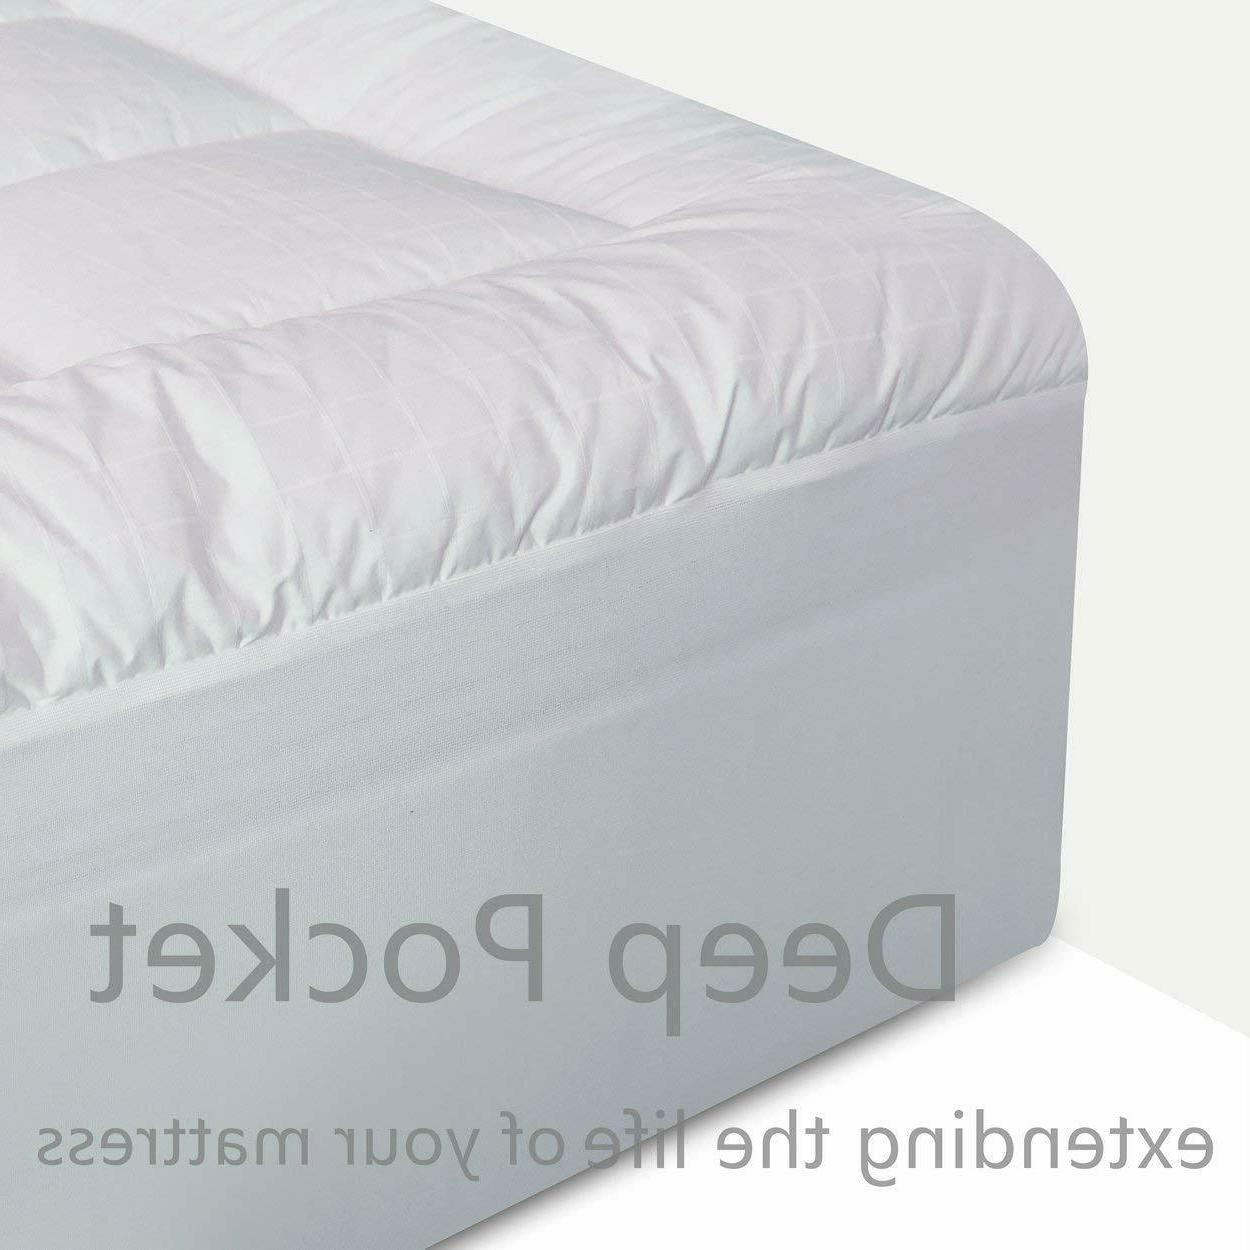 Mattress Soft Pad Case Top Breathable Hypoallergenic